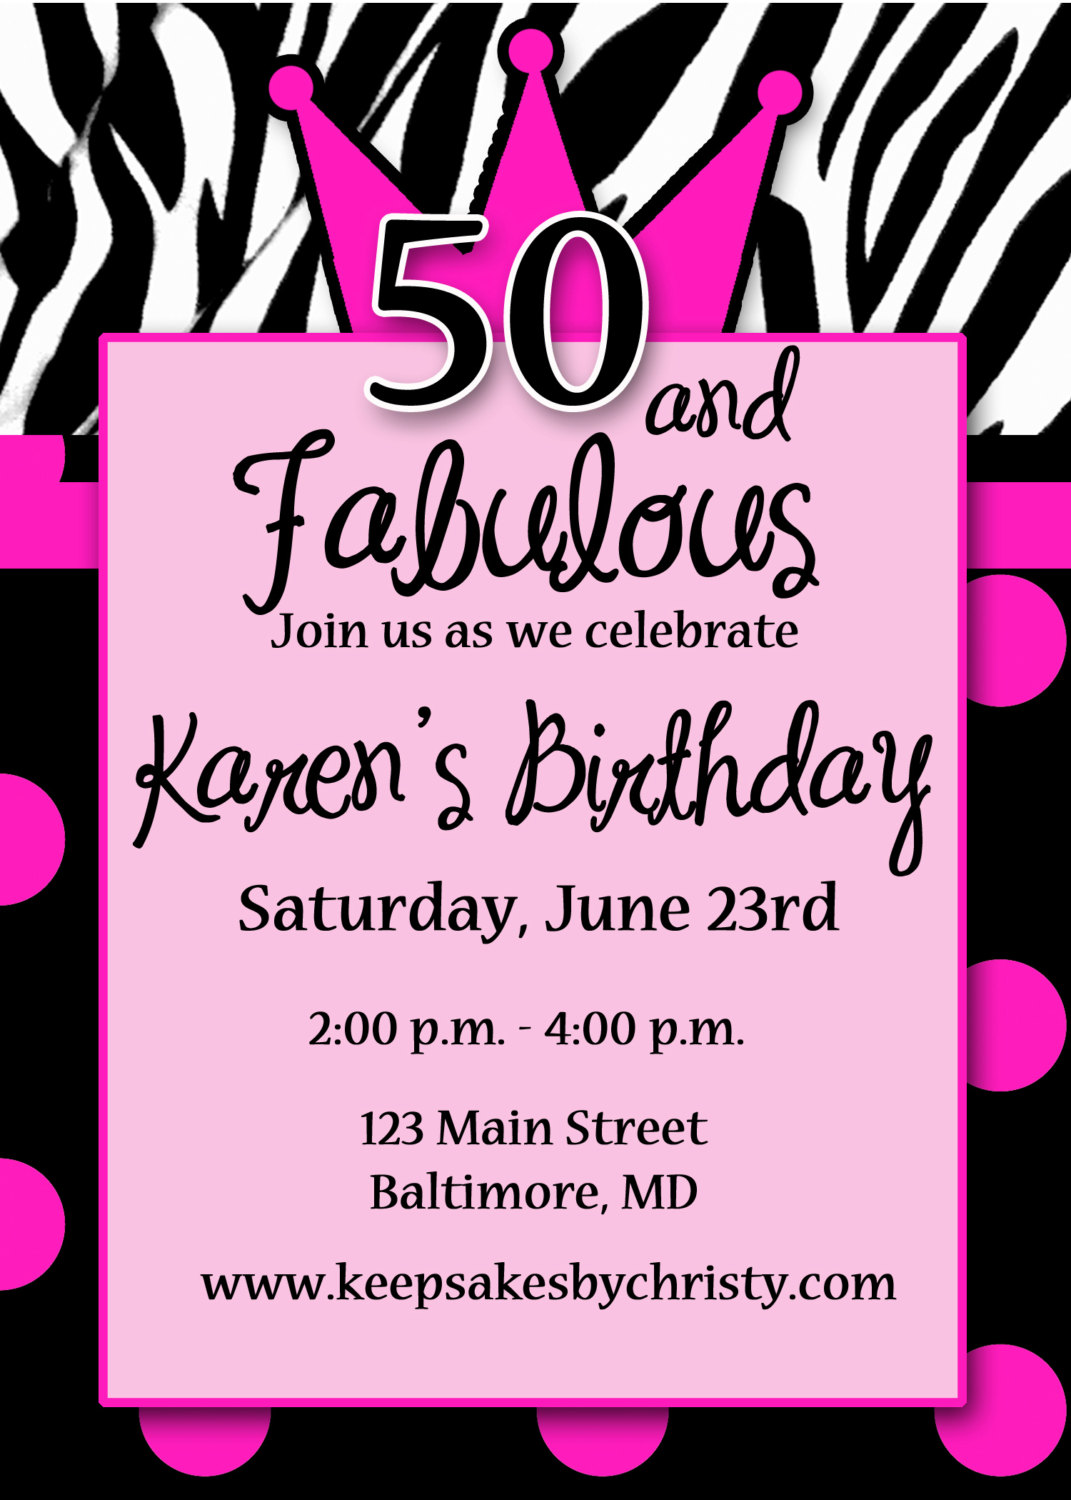 invitation card design for 50th birthday party ; endearing_invitation_40th_birthday_party_men_30th_birthday_4